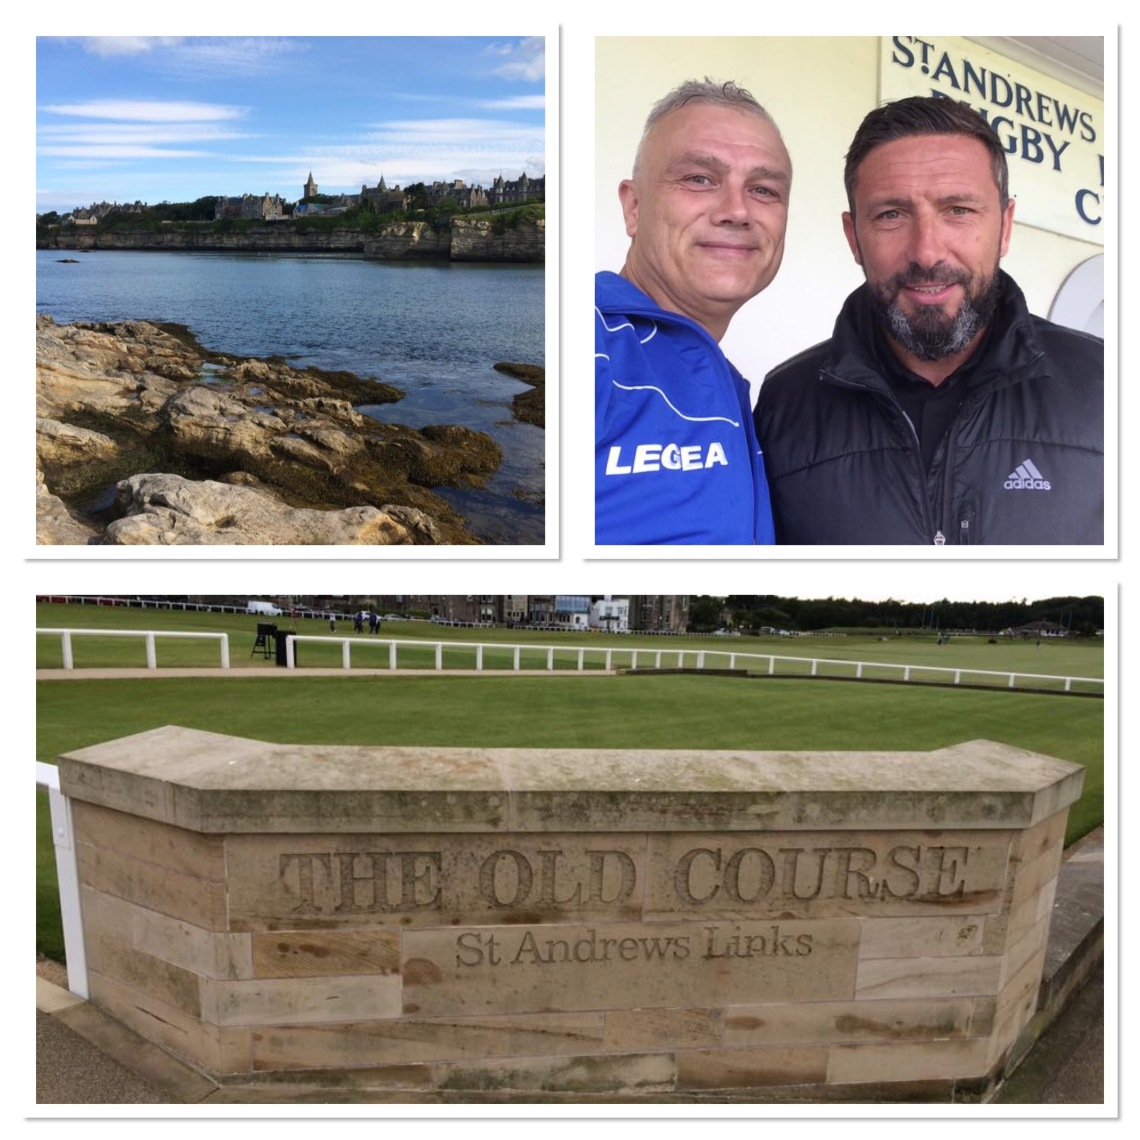 St Andrews, the home of golf and Derek McInnes